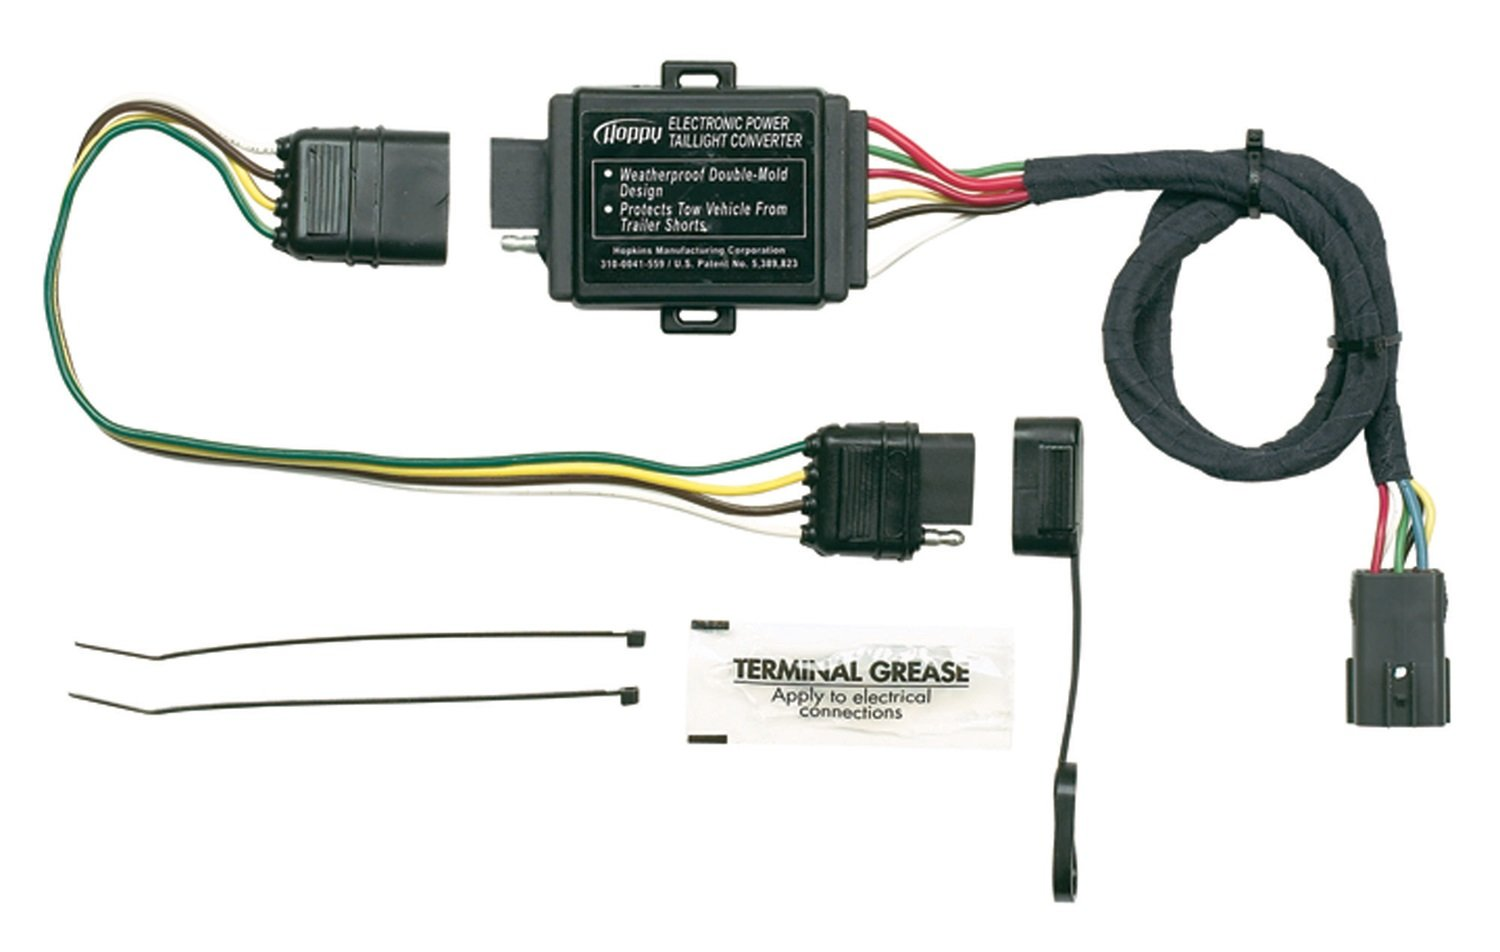 61dKvjPegbL._SL1500_ amazon com hopkins 11143875 plug in simple vehicle to trailer universal trailer wiring harness at nearapp.co